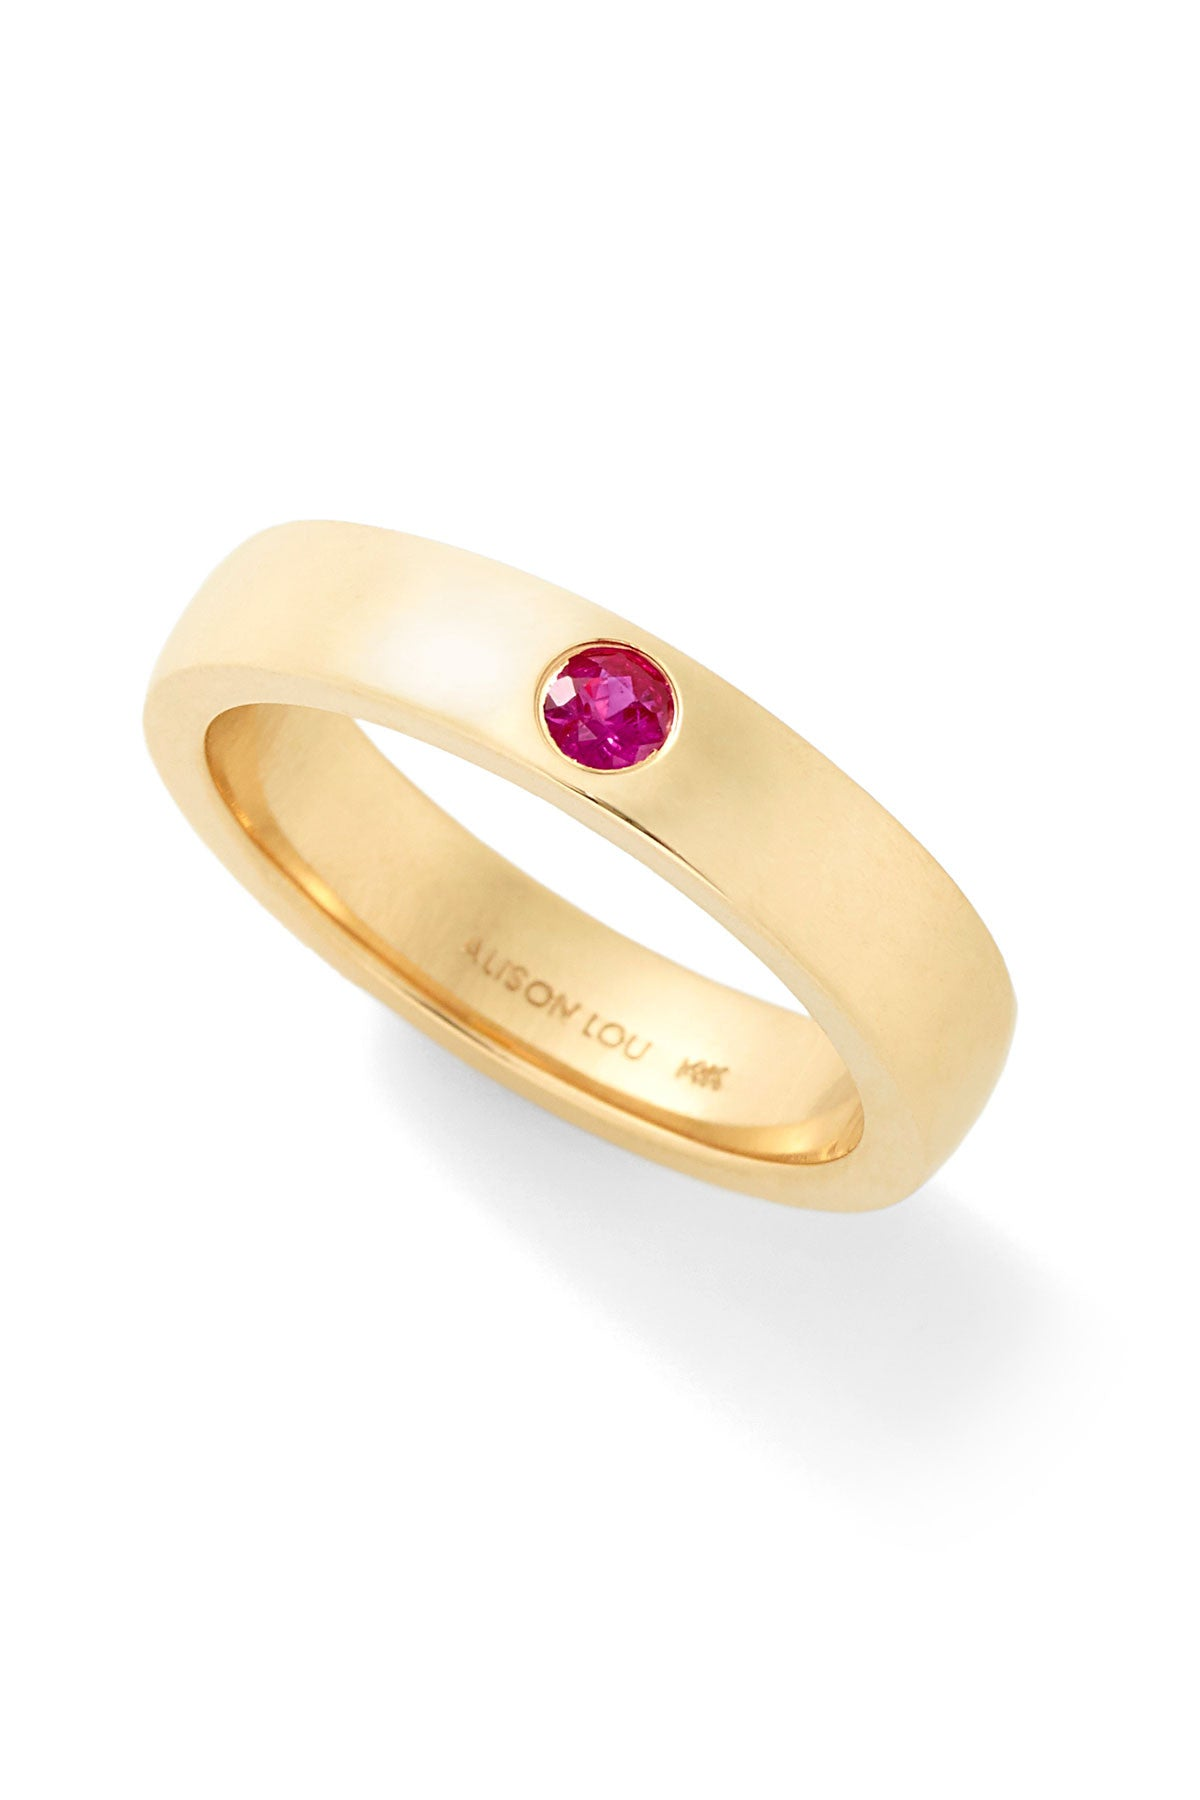 Twister Ruby Solitaire Band